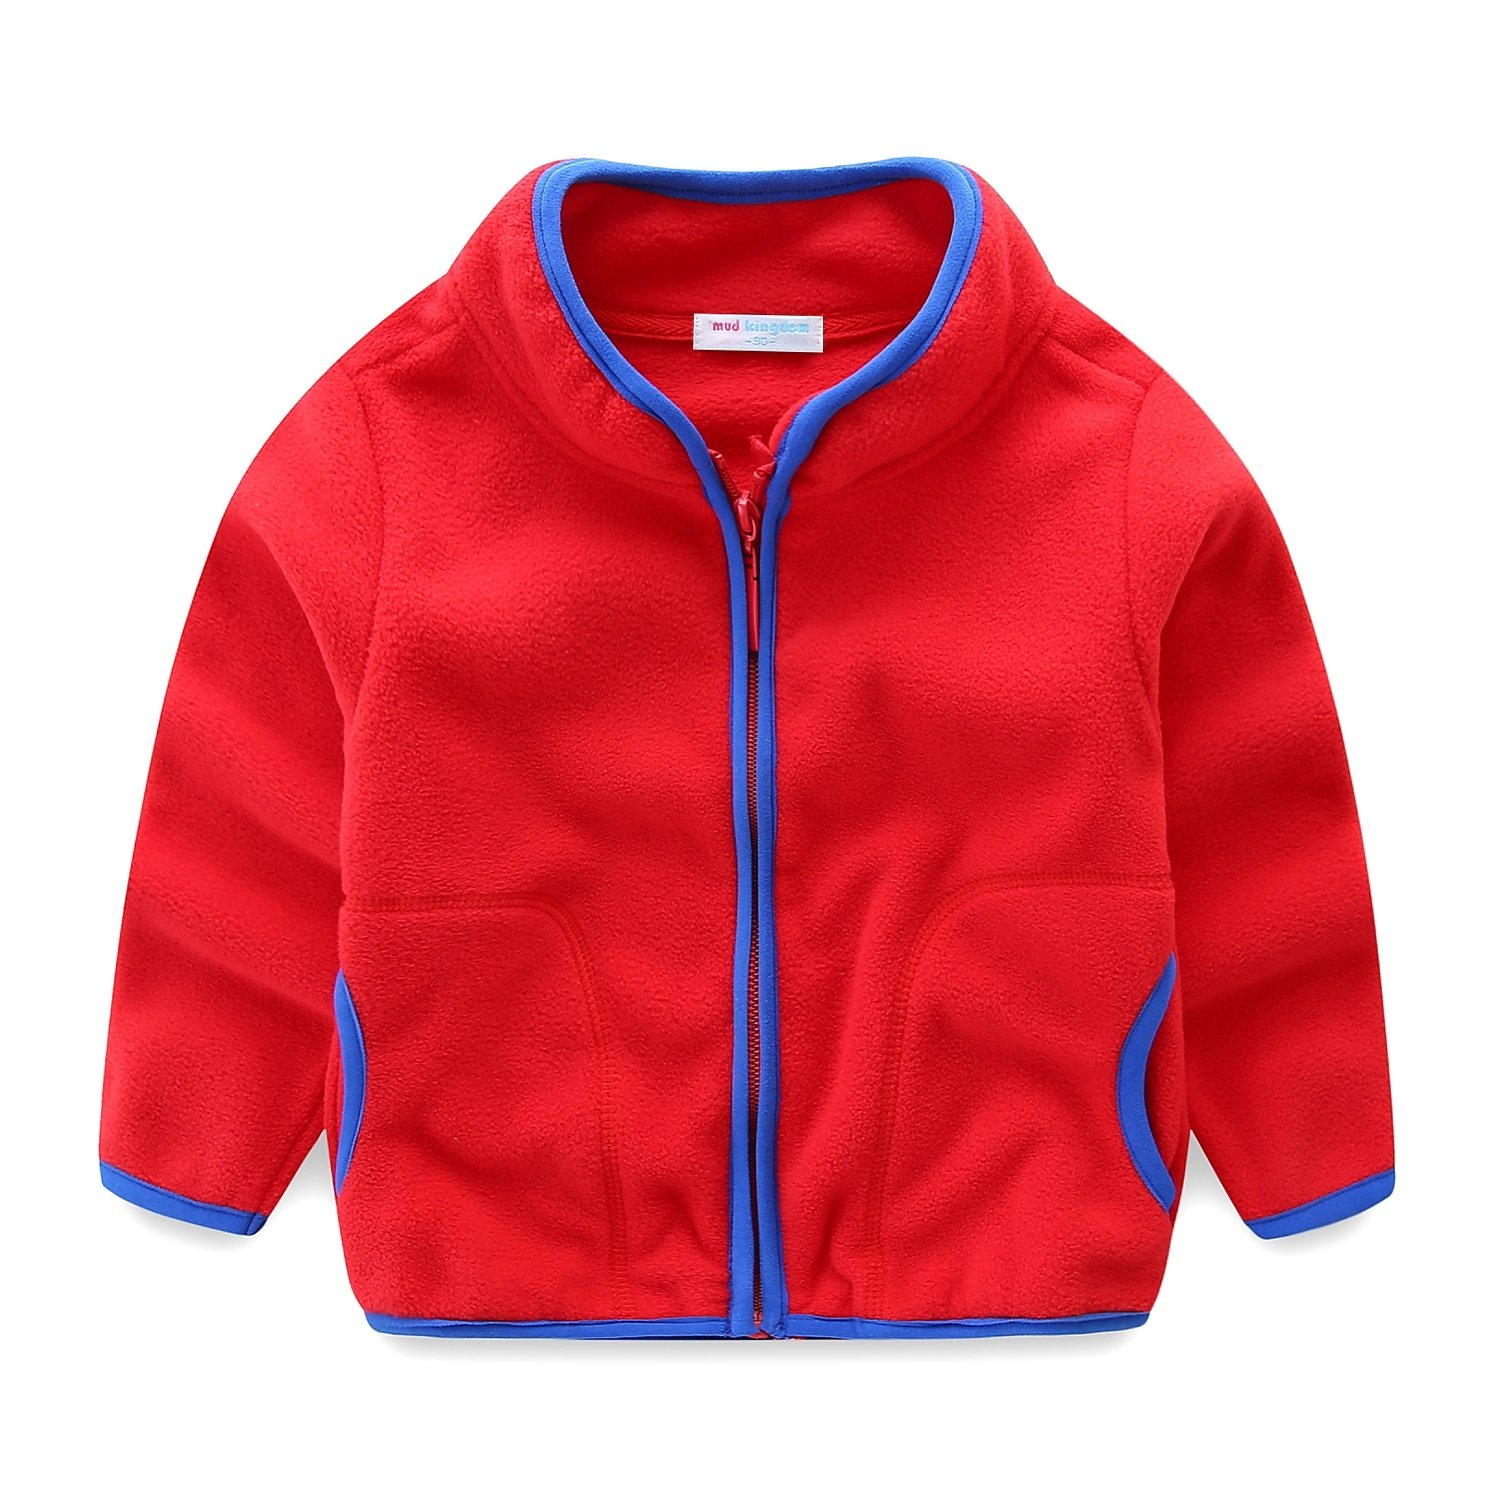 LittleSpring Little Boys' Coat Jacket Zipper SS-S0042m